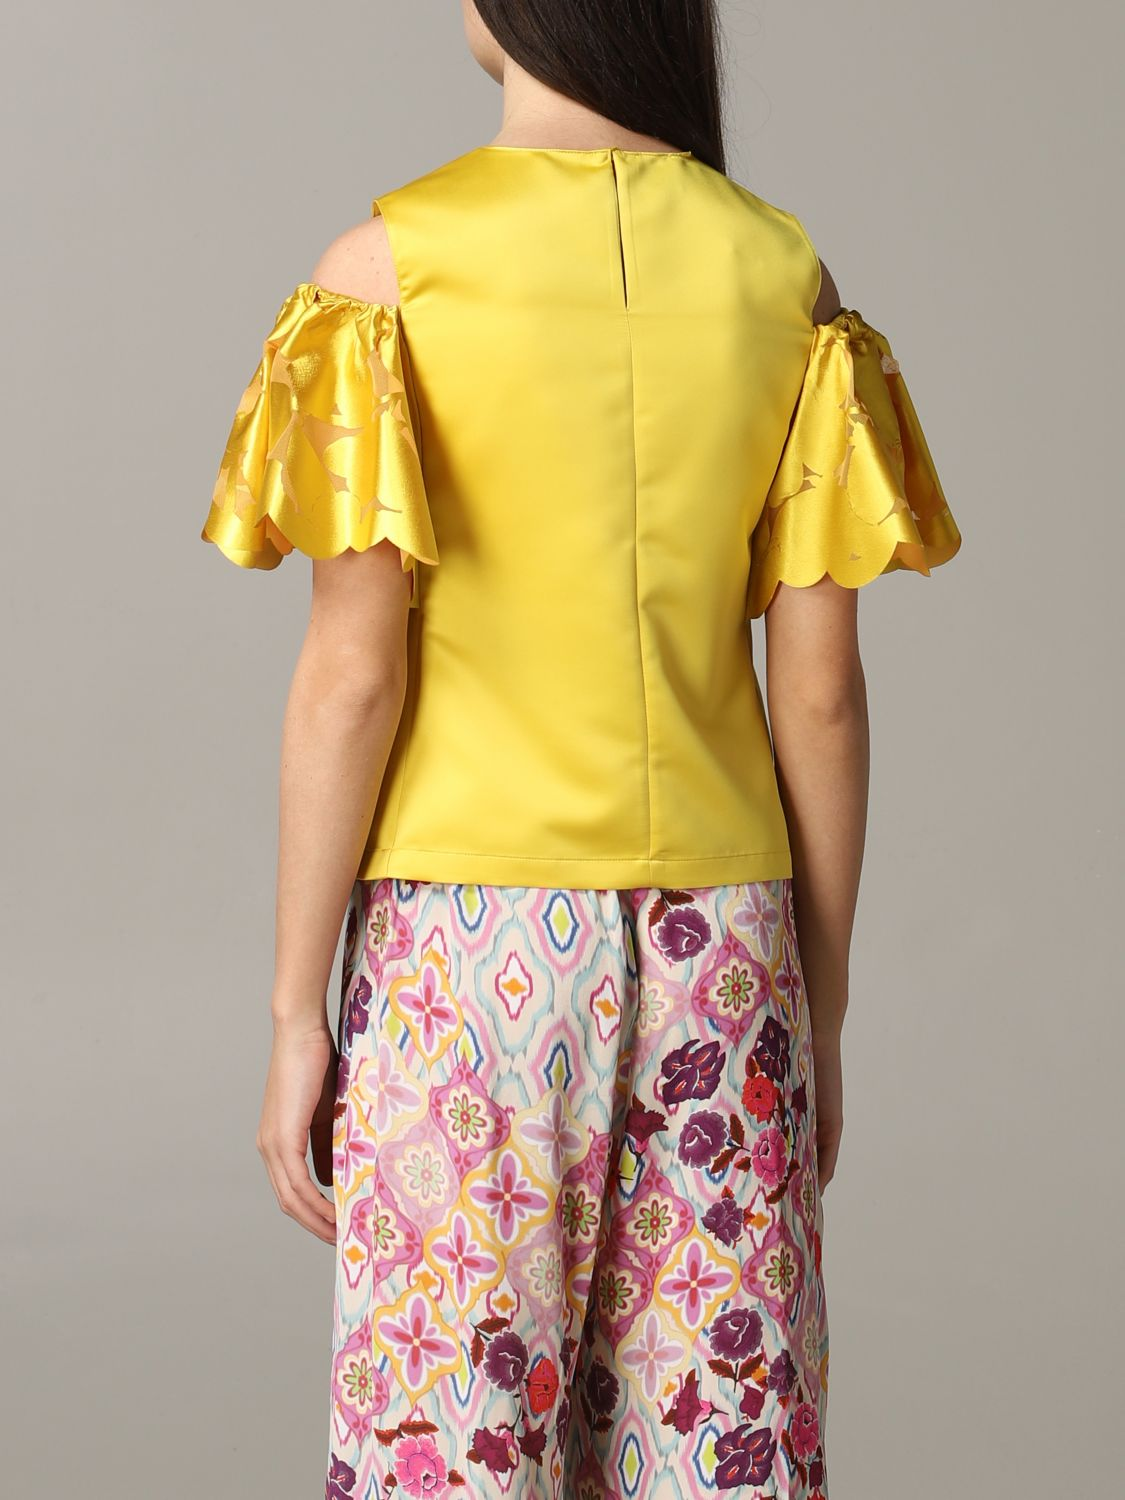 Pinko top with floral sleeves yellow 3